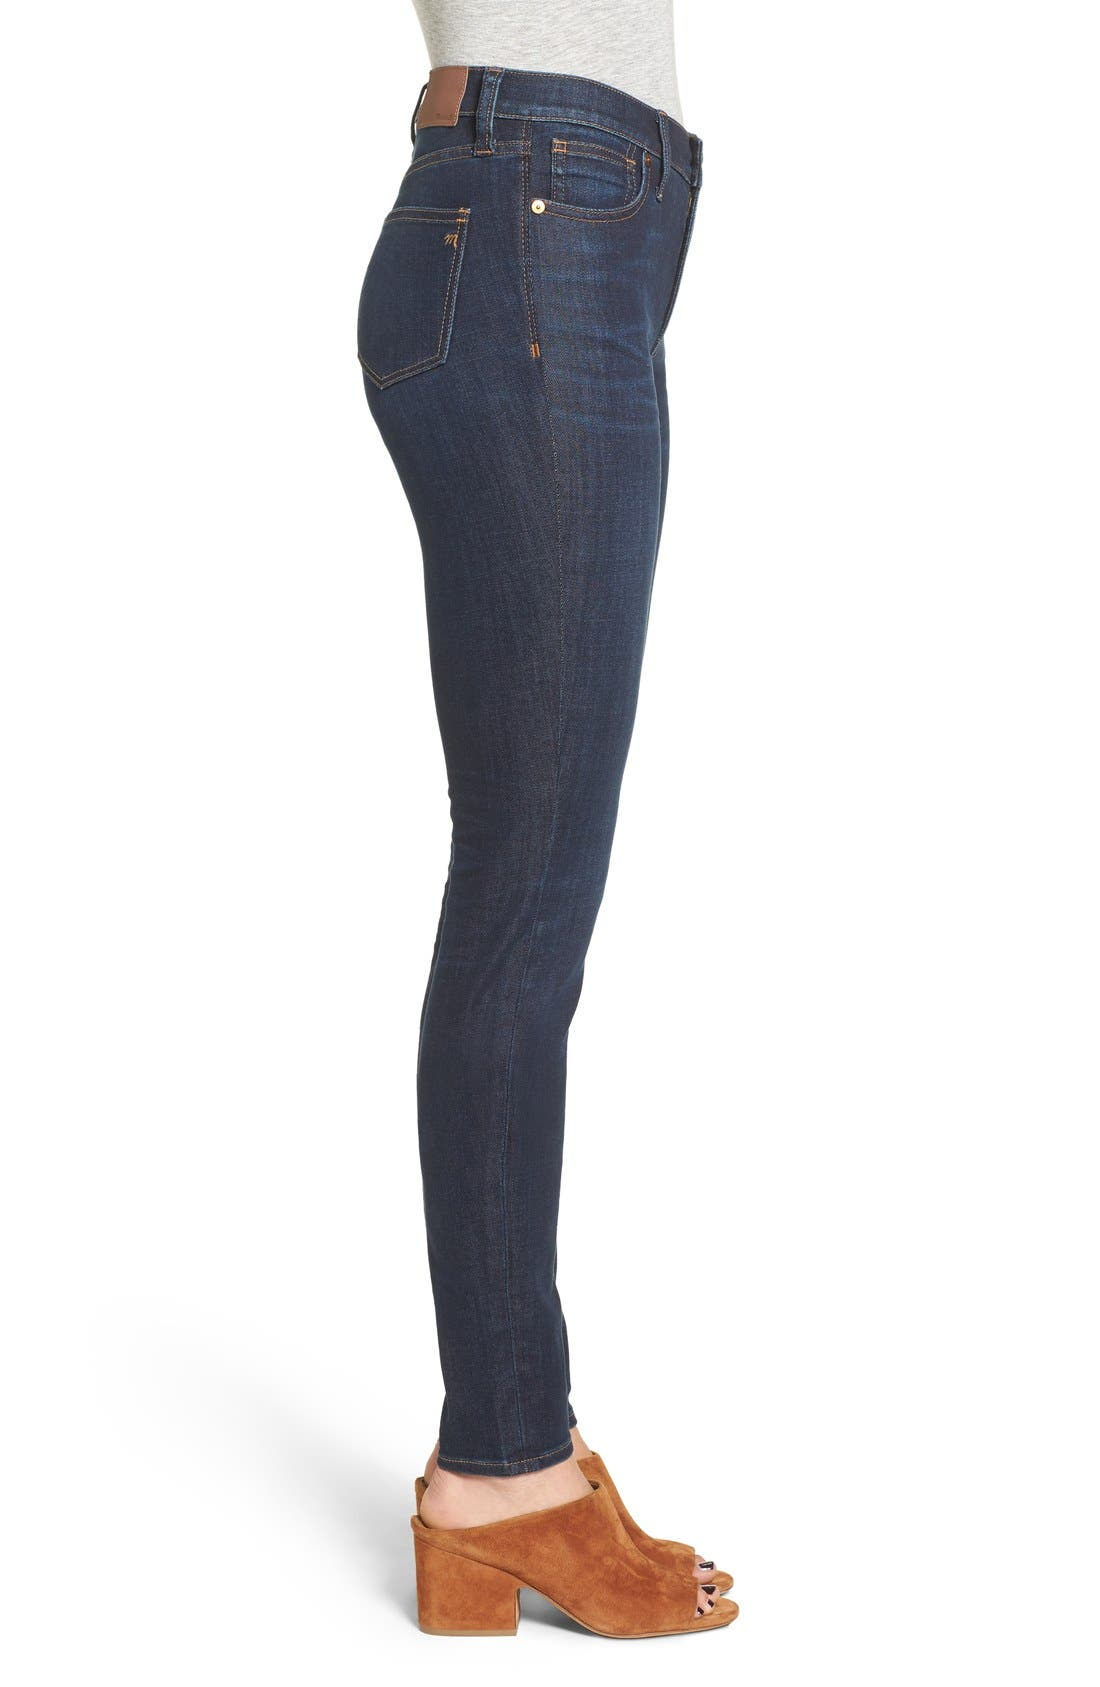 9-Inch High Rise Skinny Jeans,                             Alternate thumbnail 14, color,                             LARKSPUR